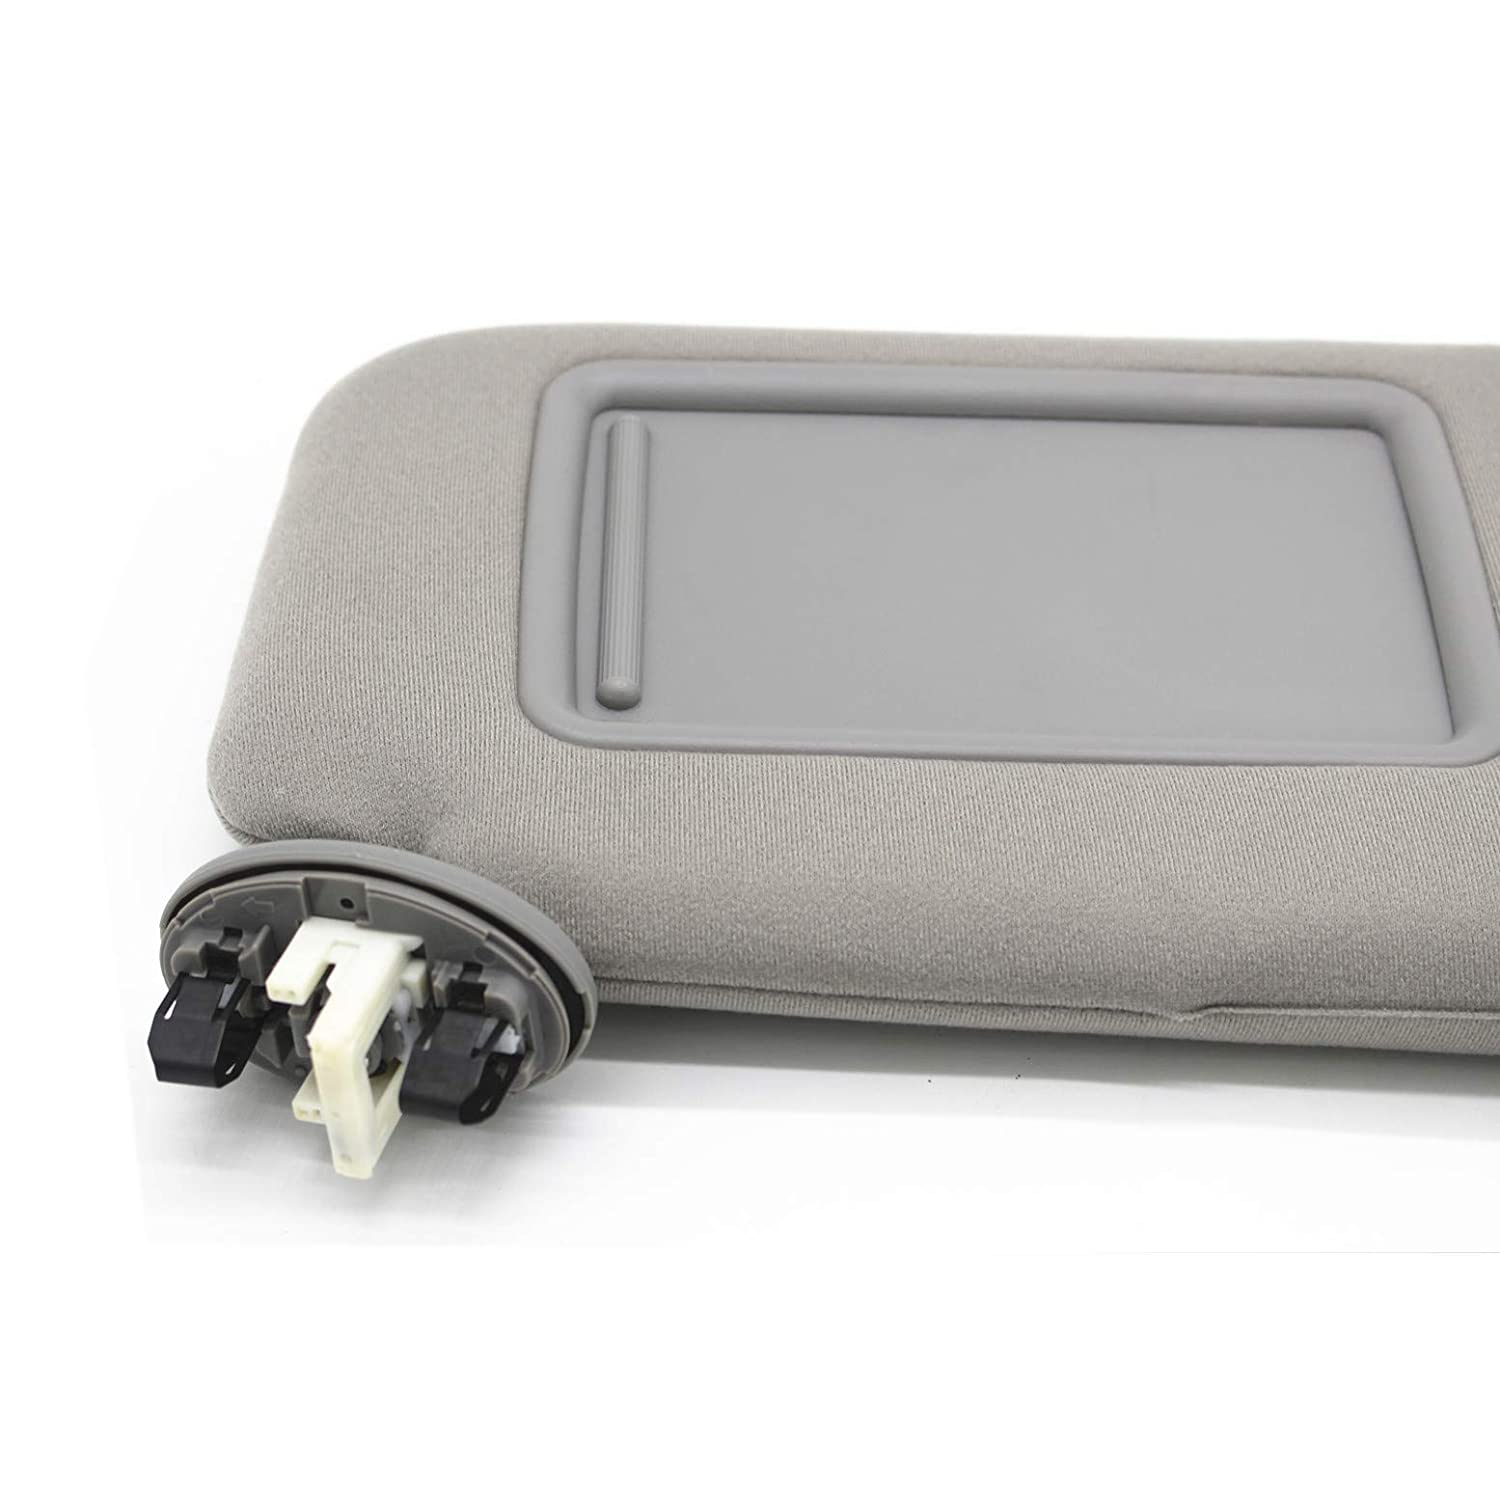 Ezzy Auto Beige Right Passenger Side Sun Visor fit for Toyota Camry with Sunroof 2007 2008 2009 2010 2011